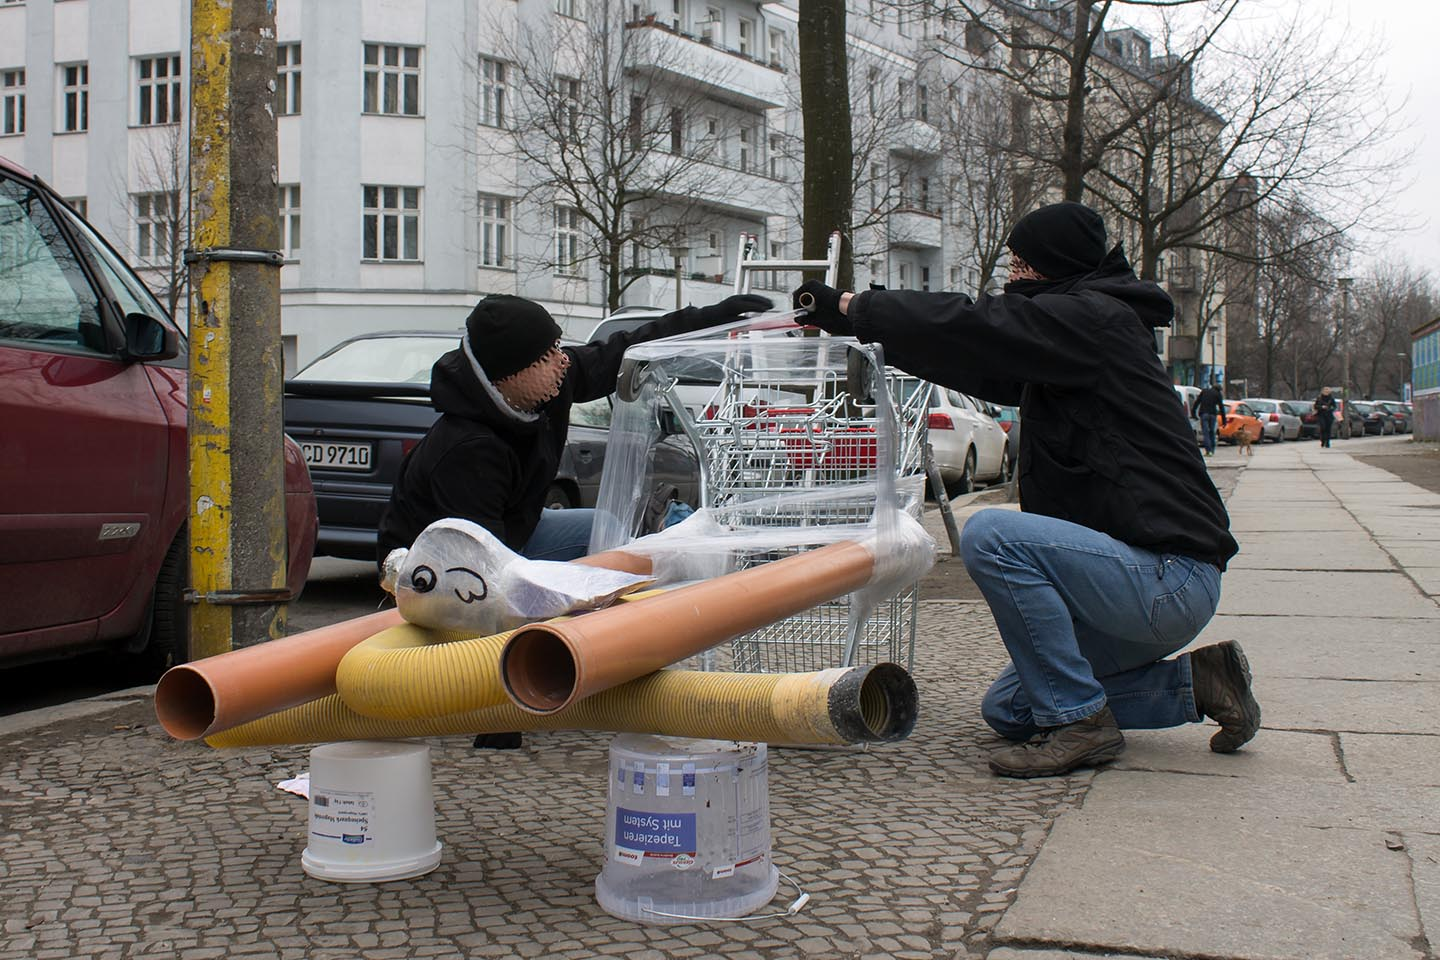 The Nuclear Man installation by Berlin based Street Artists Bosso Fataka